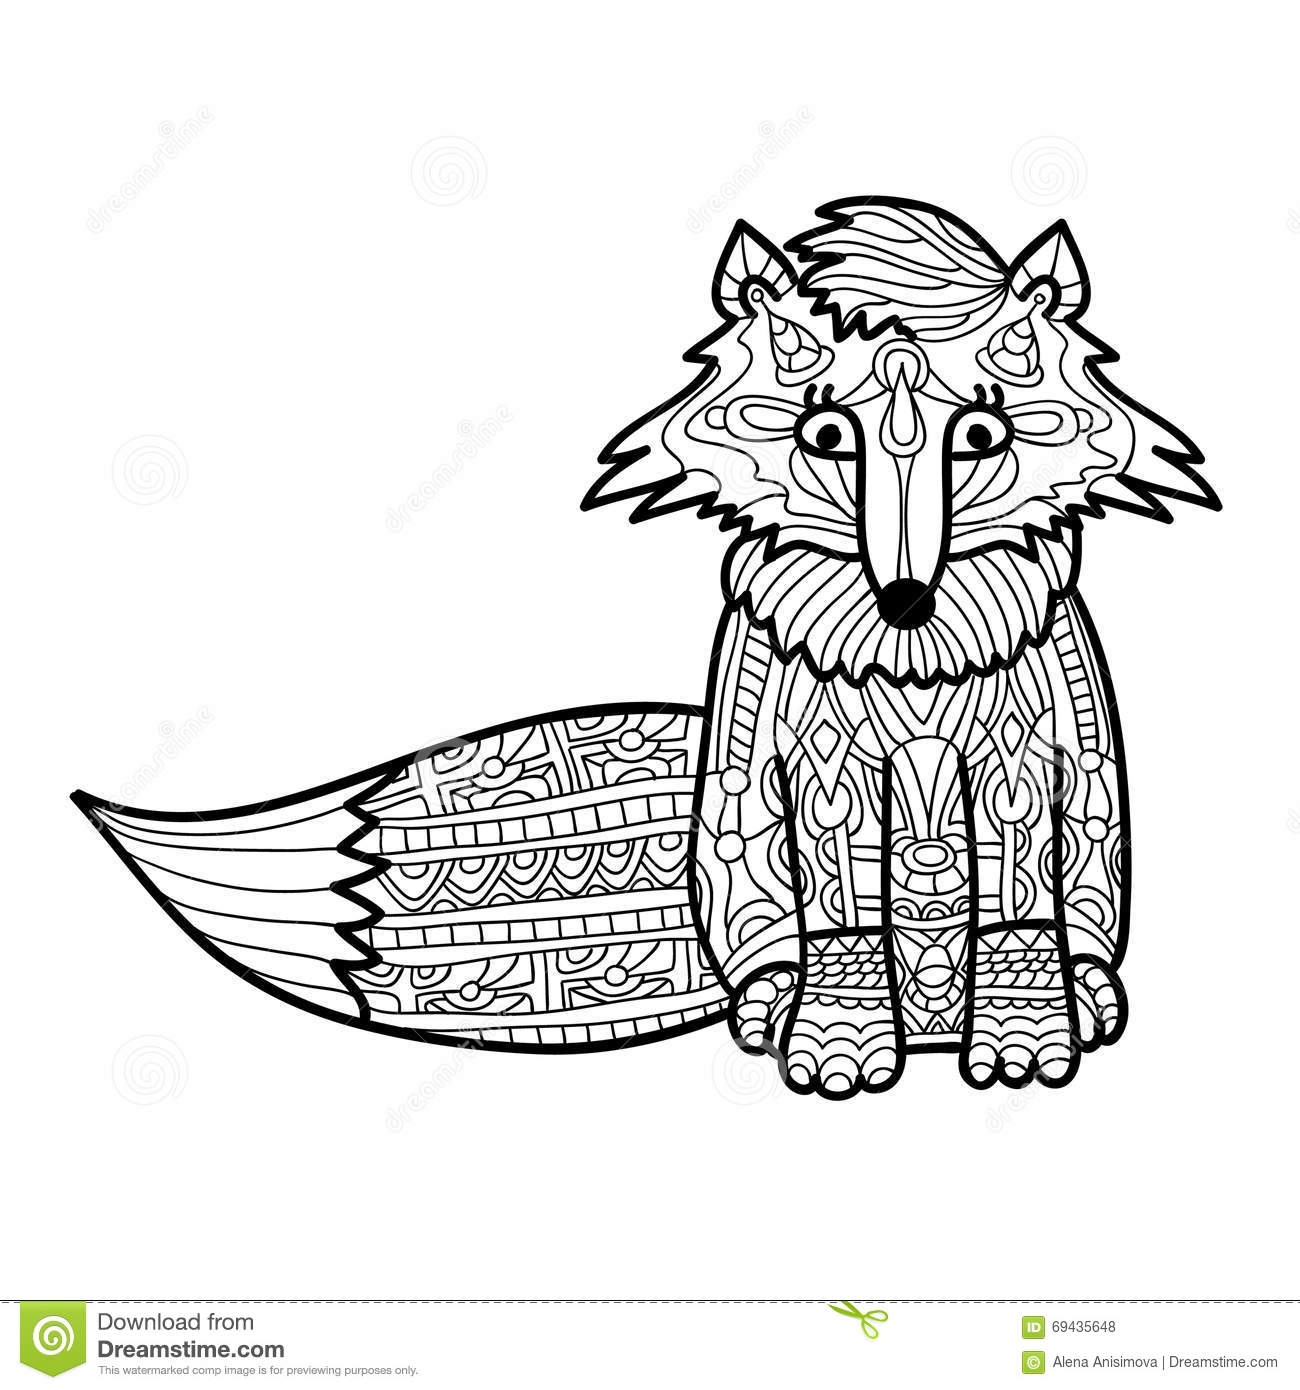 Zantangle Fox Handmade Isolated Vector On A White Background For Your Design Collection Of Animals Coloring Book Stock Vector Illustration Of Hand Floral 69435648